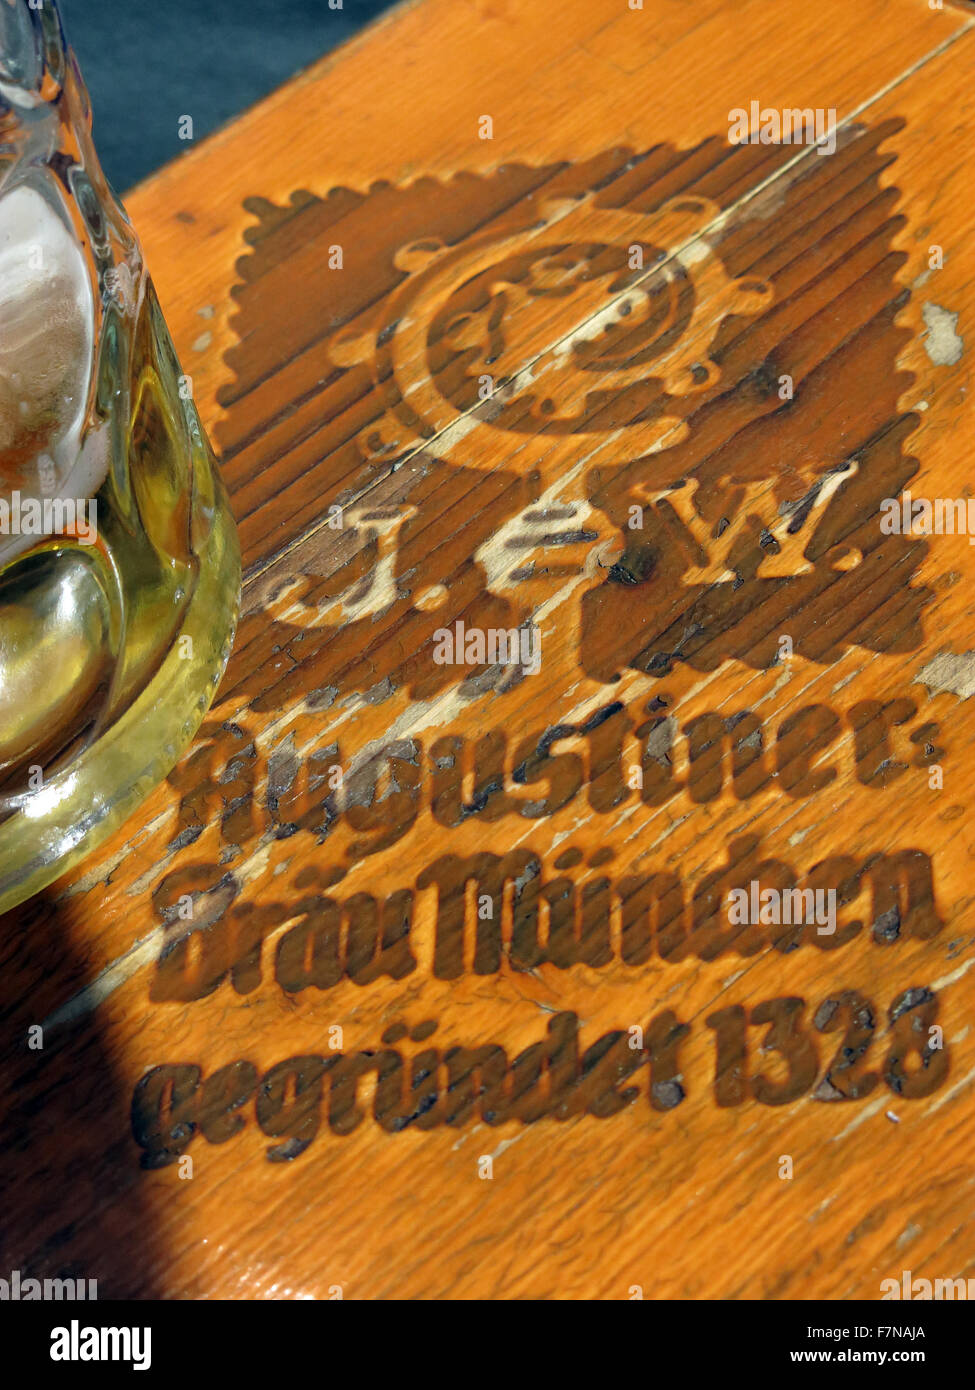 Octoberfest,wood,wooden,stain,brand,beer,bier,beir,glass,1328,jw,gegrunder 1328,mat,beermat,advertising,alcohol,bar,bars,bavarian,beer,brew,brewery,lager,lagers,pils,liter,litre,surface,Munich,Bavaria,Germany,tables,augustiner brau,Gegrunder 1328,Augustiner Brau,GoTonySmith,ale,ammer,autumn,bavaria,beer,beer festival,beer garden,bier,blaukraut,bread,brezen,bright,building,buildings,buy images of,buy pictures of,center,centre,chicken,dirndl,dumplings,enjoyment,event,fairgrounds,festival,field,fun,funfair,garden,garten,germany,gotonysmith,happy,in,kndel,ksesptzle,lederhosen,meadow,munchen,munich,munich octoberfest,munich oktoberfest,october,octoberfest,oktoberfest,oktoberfest beer,pancake,pork,potato,pretzels,reiberdatschi,roast,rotkohl,sauerkraut,scenes,sennerhut,sunny,table,tables,tent,therese,theresienwiese,ticket,tickets,tourism,tourist,tourists,tradition,traditional,travelling,tree,trees,unity day,volksfest,wiesn,Buy Pictures of,Buy Images Of